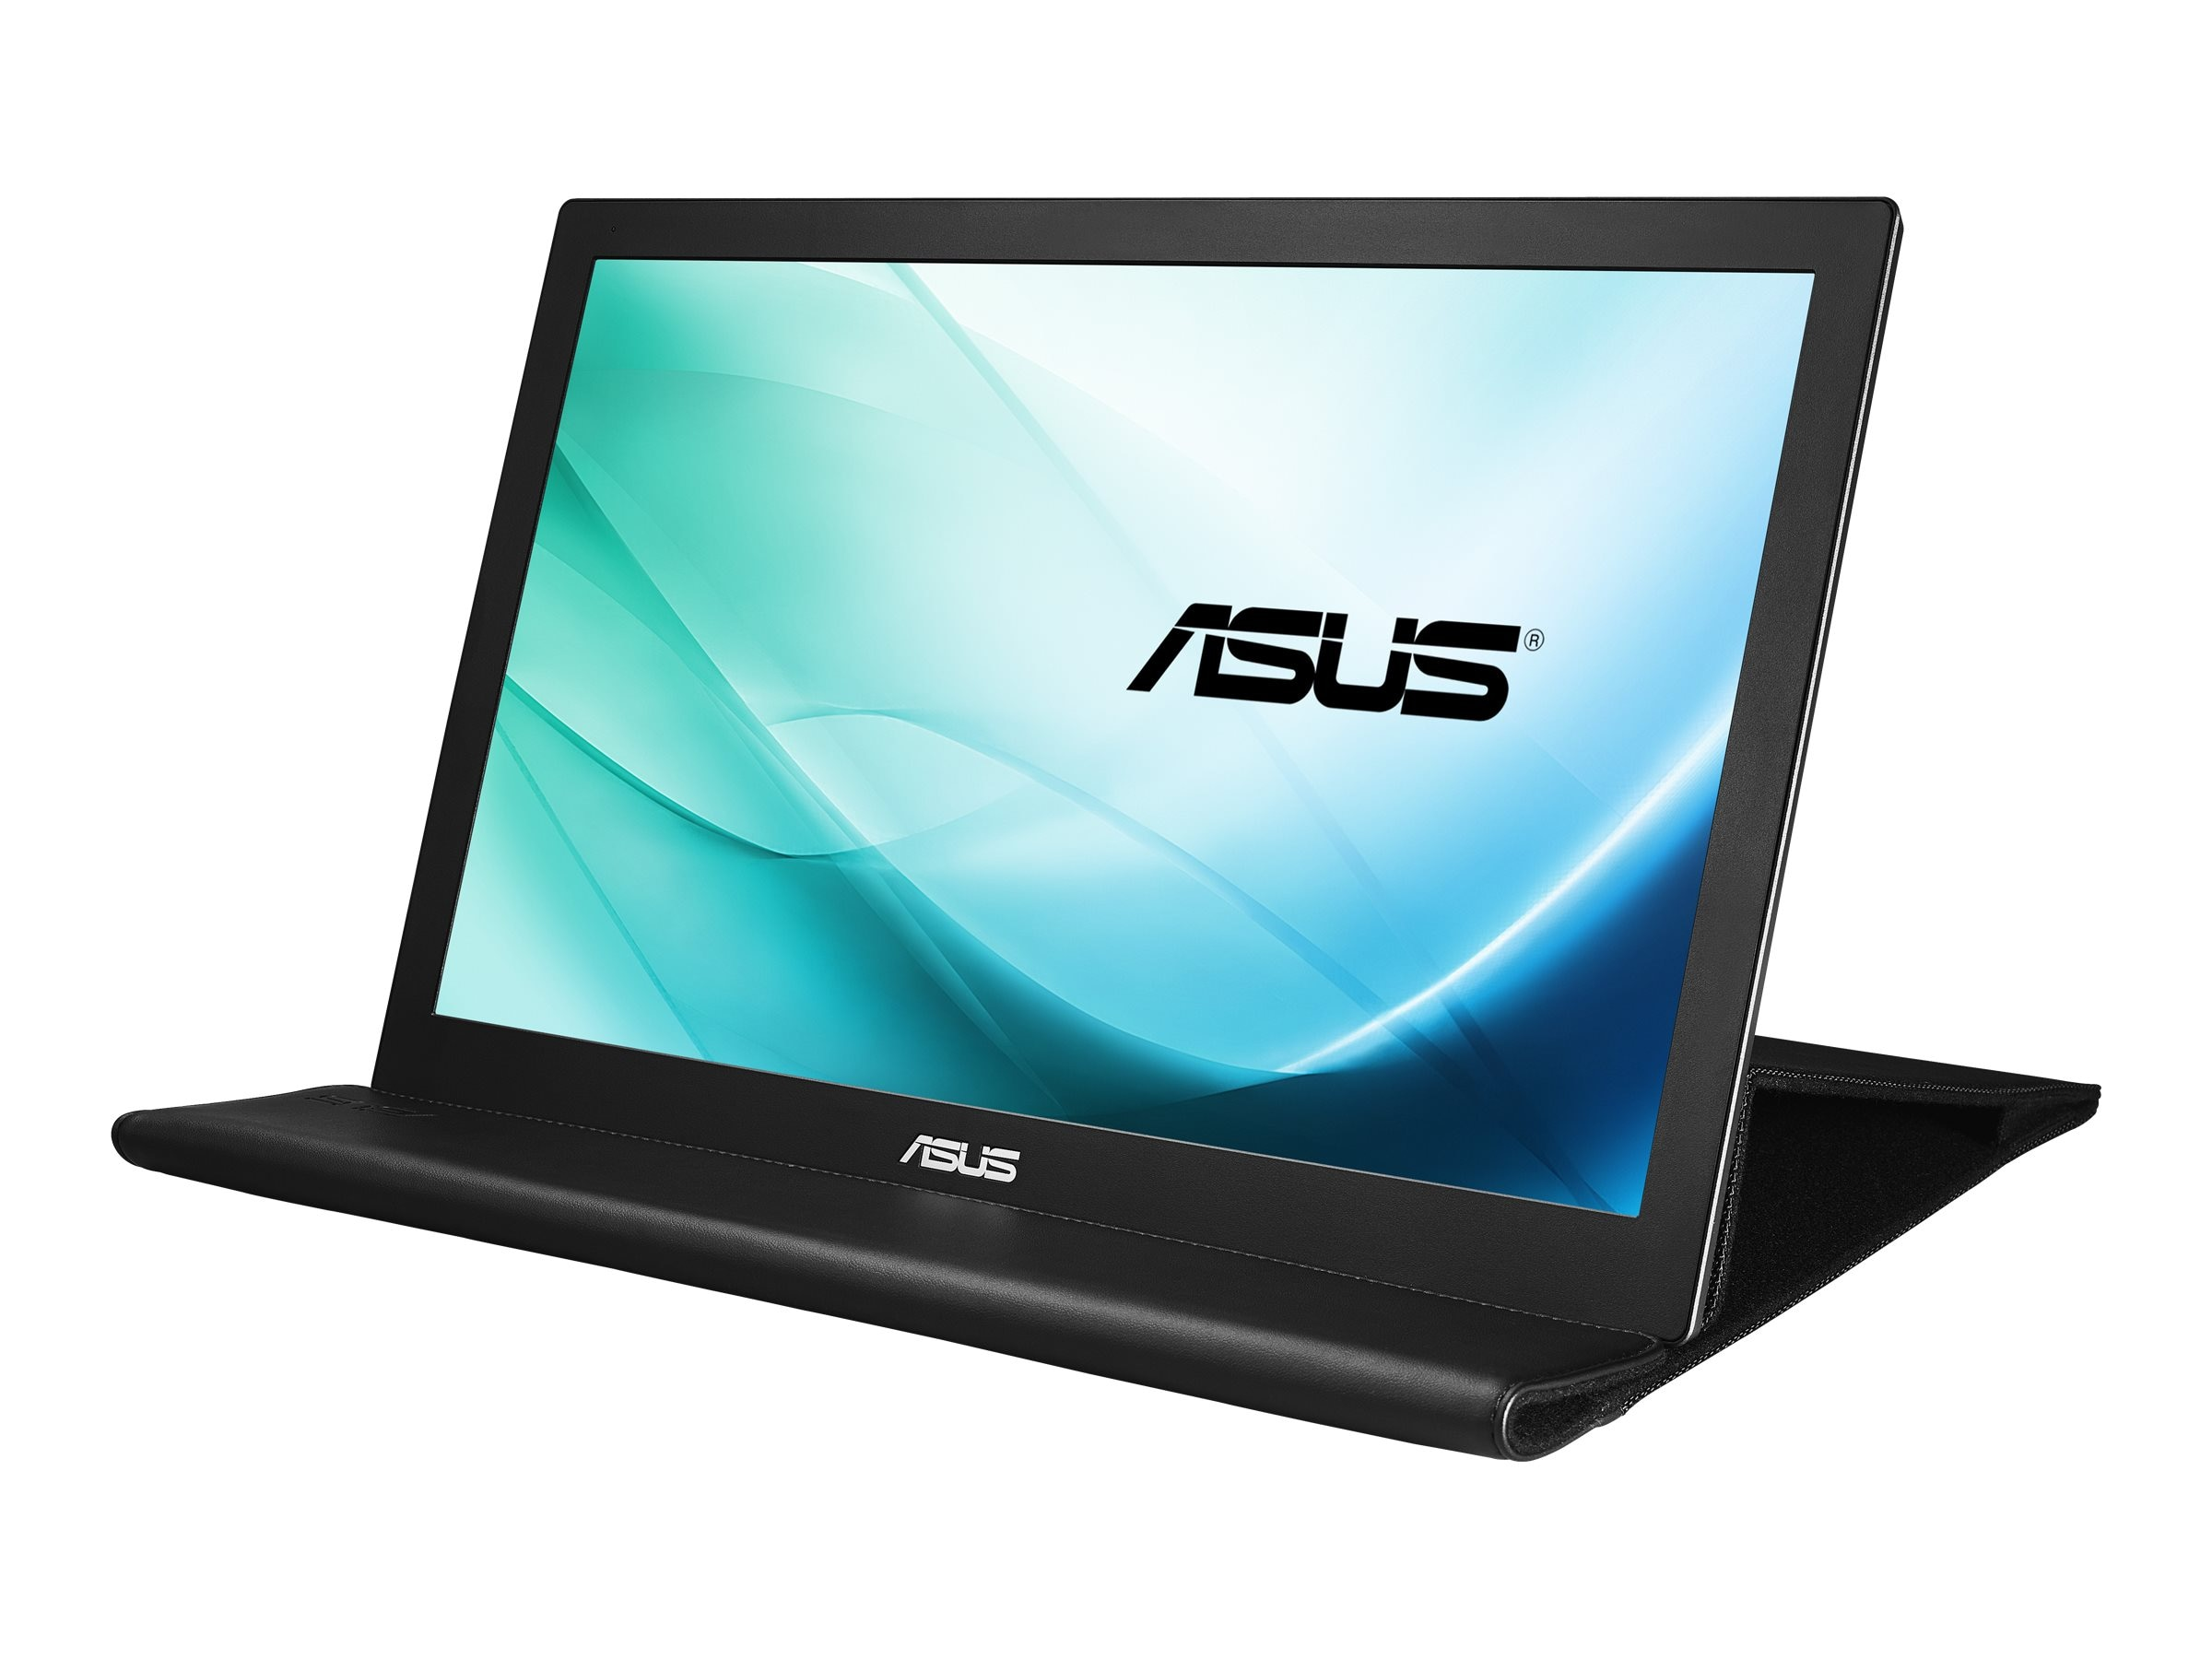 Asus 15.6 MB169B+ Full HD LED-LCD Monitor, Black, MB169B+